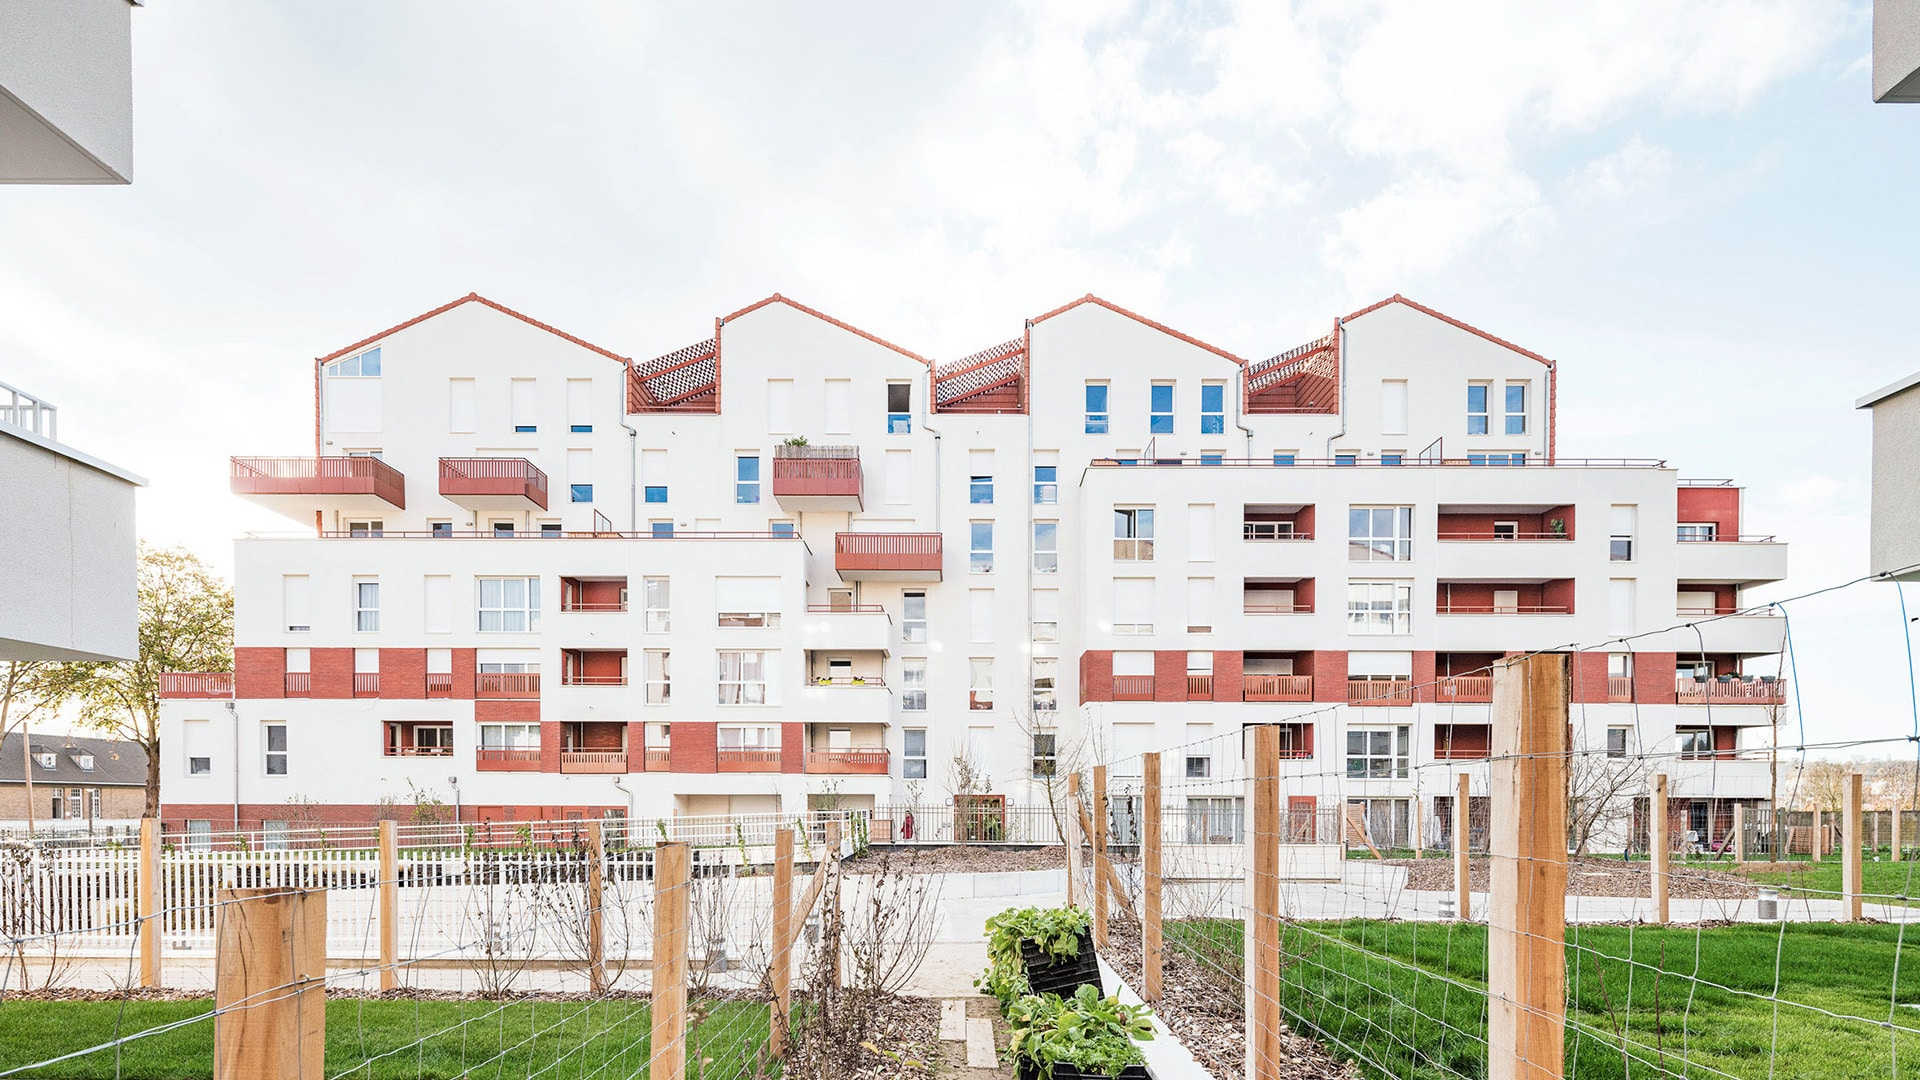 Maison Blanche Neuilly sur Marne